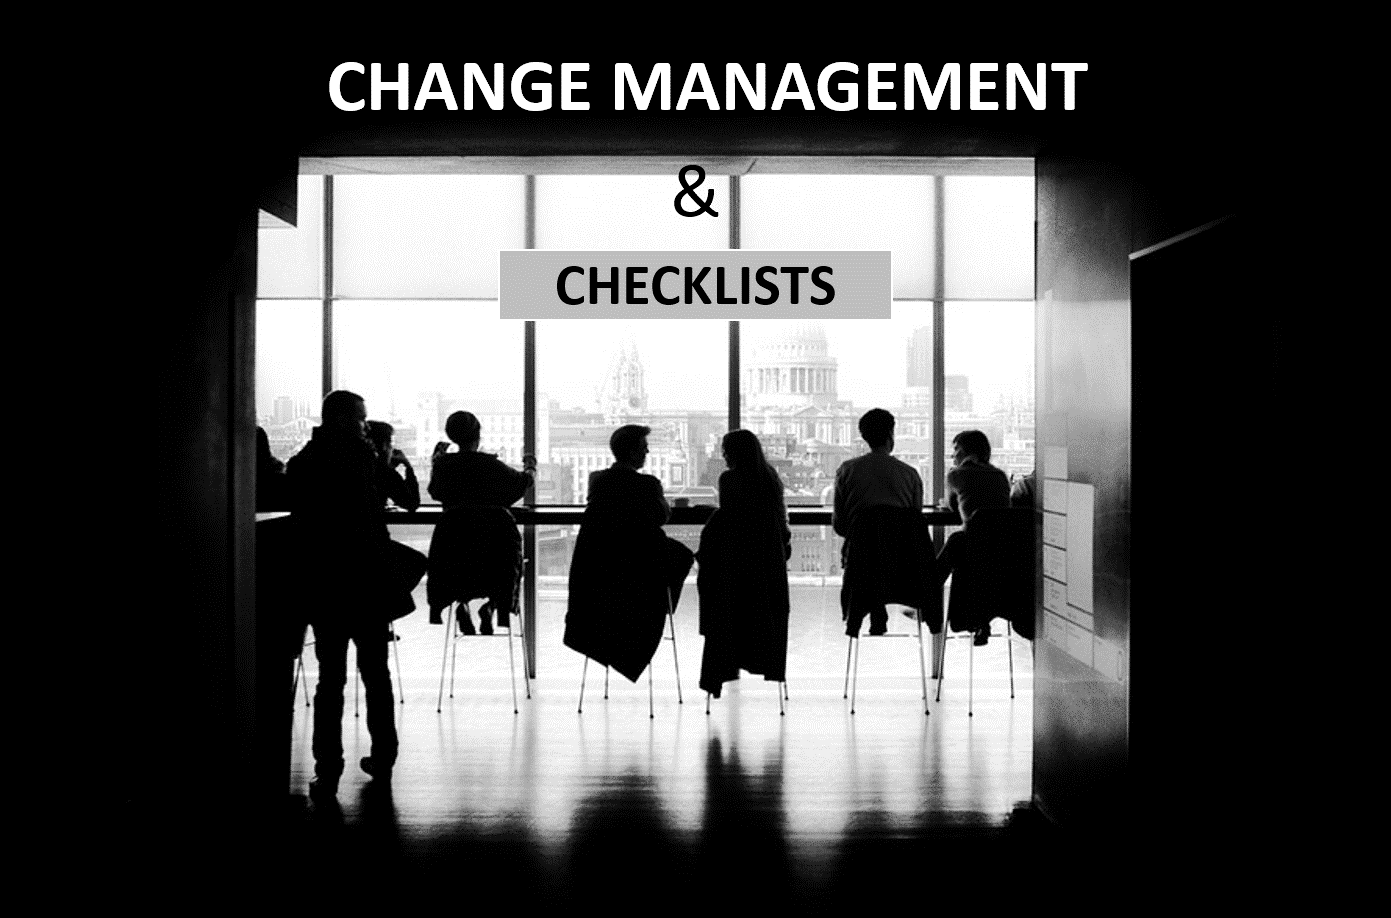 CHANGE MANAGEMENT CHECKLIST CULTURE